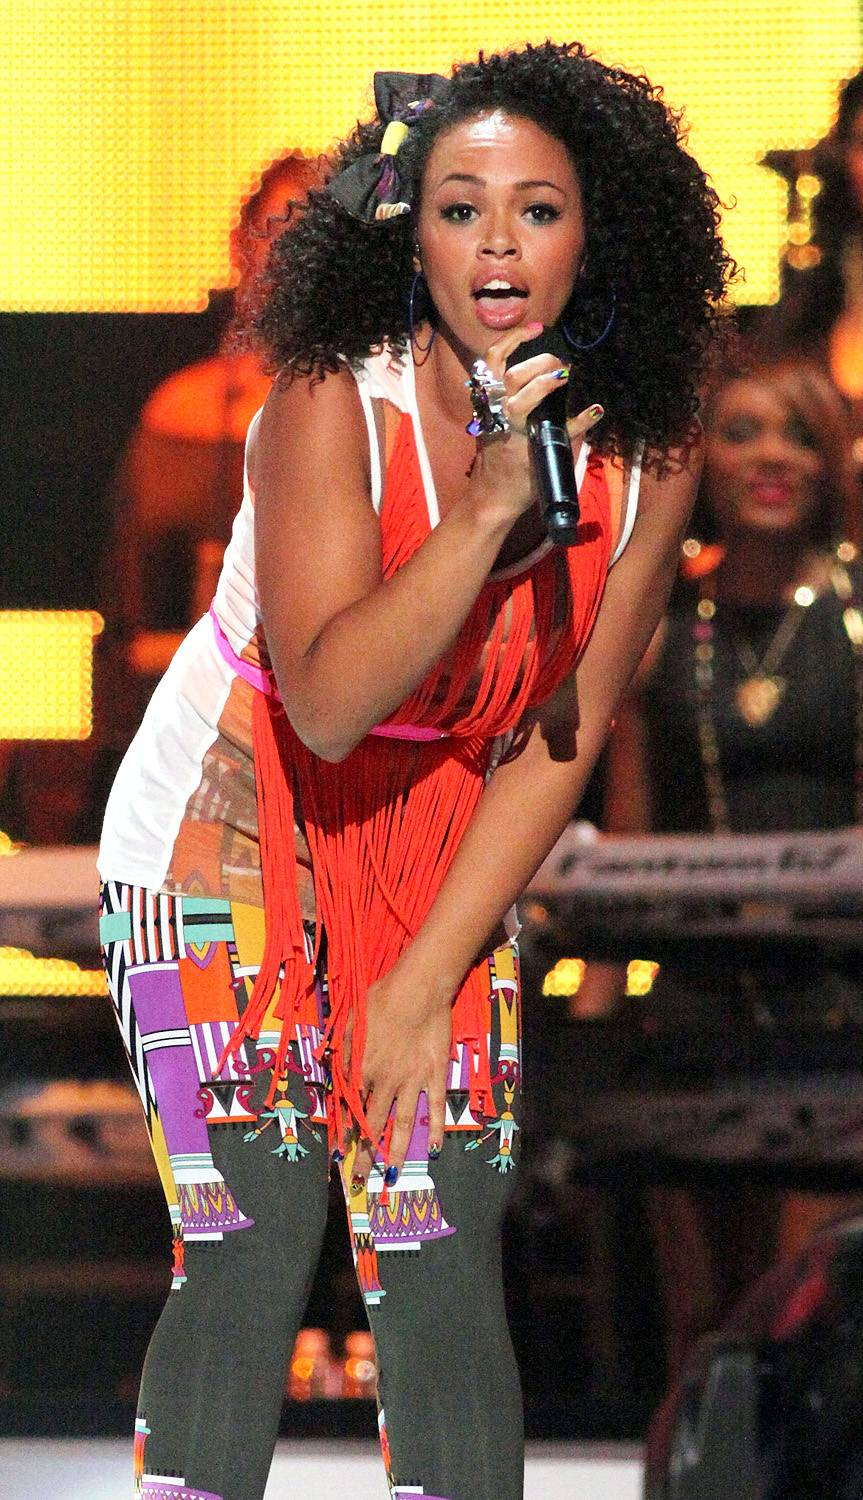 """Elle Varner - Cali girl Elle Varner released her debut single, """"Only Wanna Give it to You,"""" featuring J. Cole, this past August. Since its release, the BET Music Matters artist has gotten enough buzz to stir up anticipation for her upcoming album, Perfectly Imperfect.(Photo: John W. Ferguson/Getty Images)"""